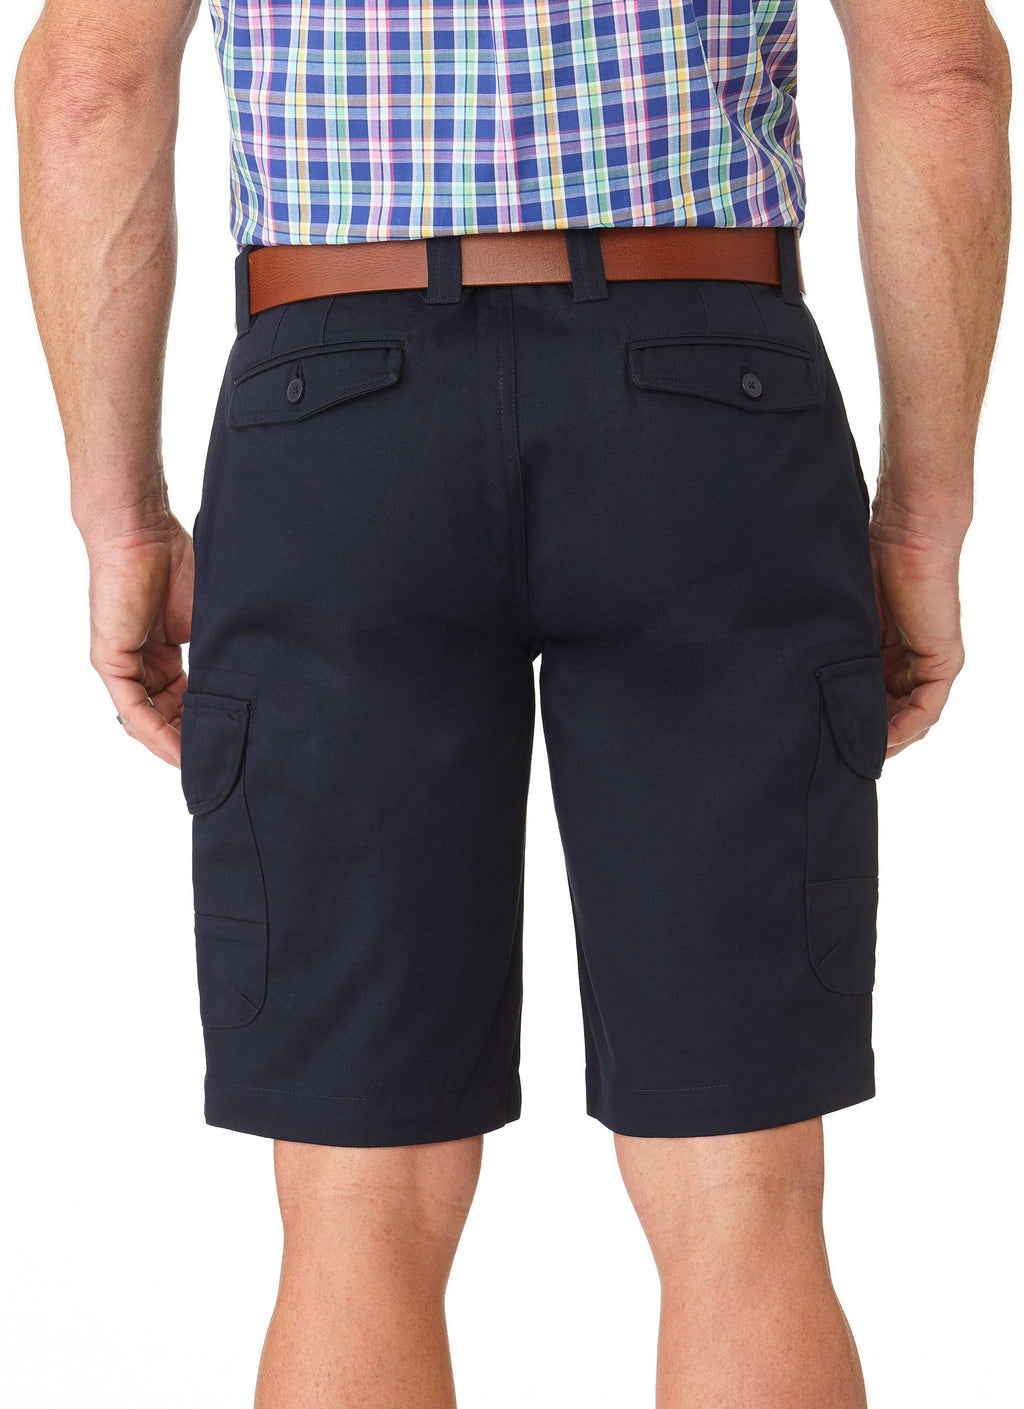 COULTA Cargo 100% Easy Iron Cotton Short